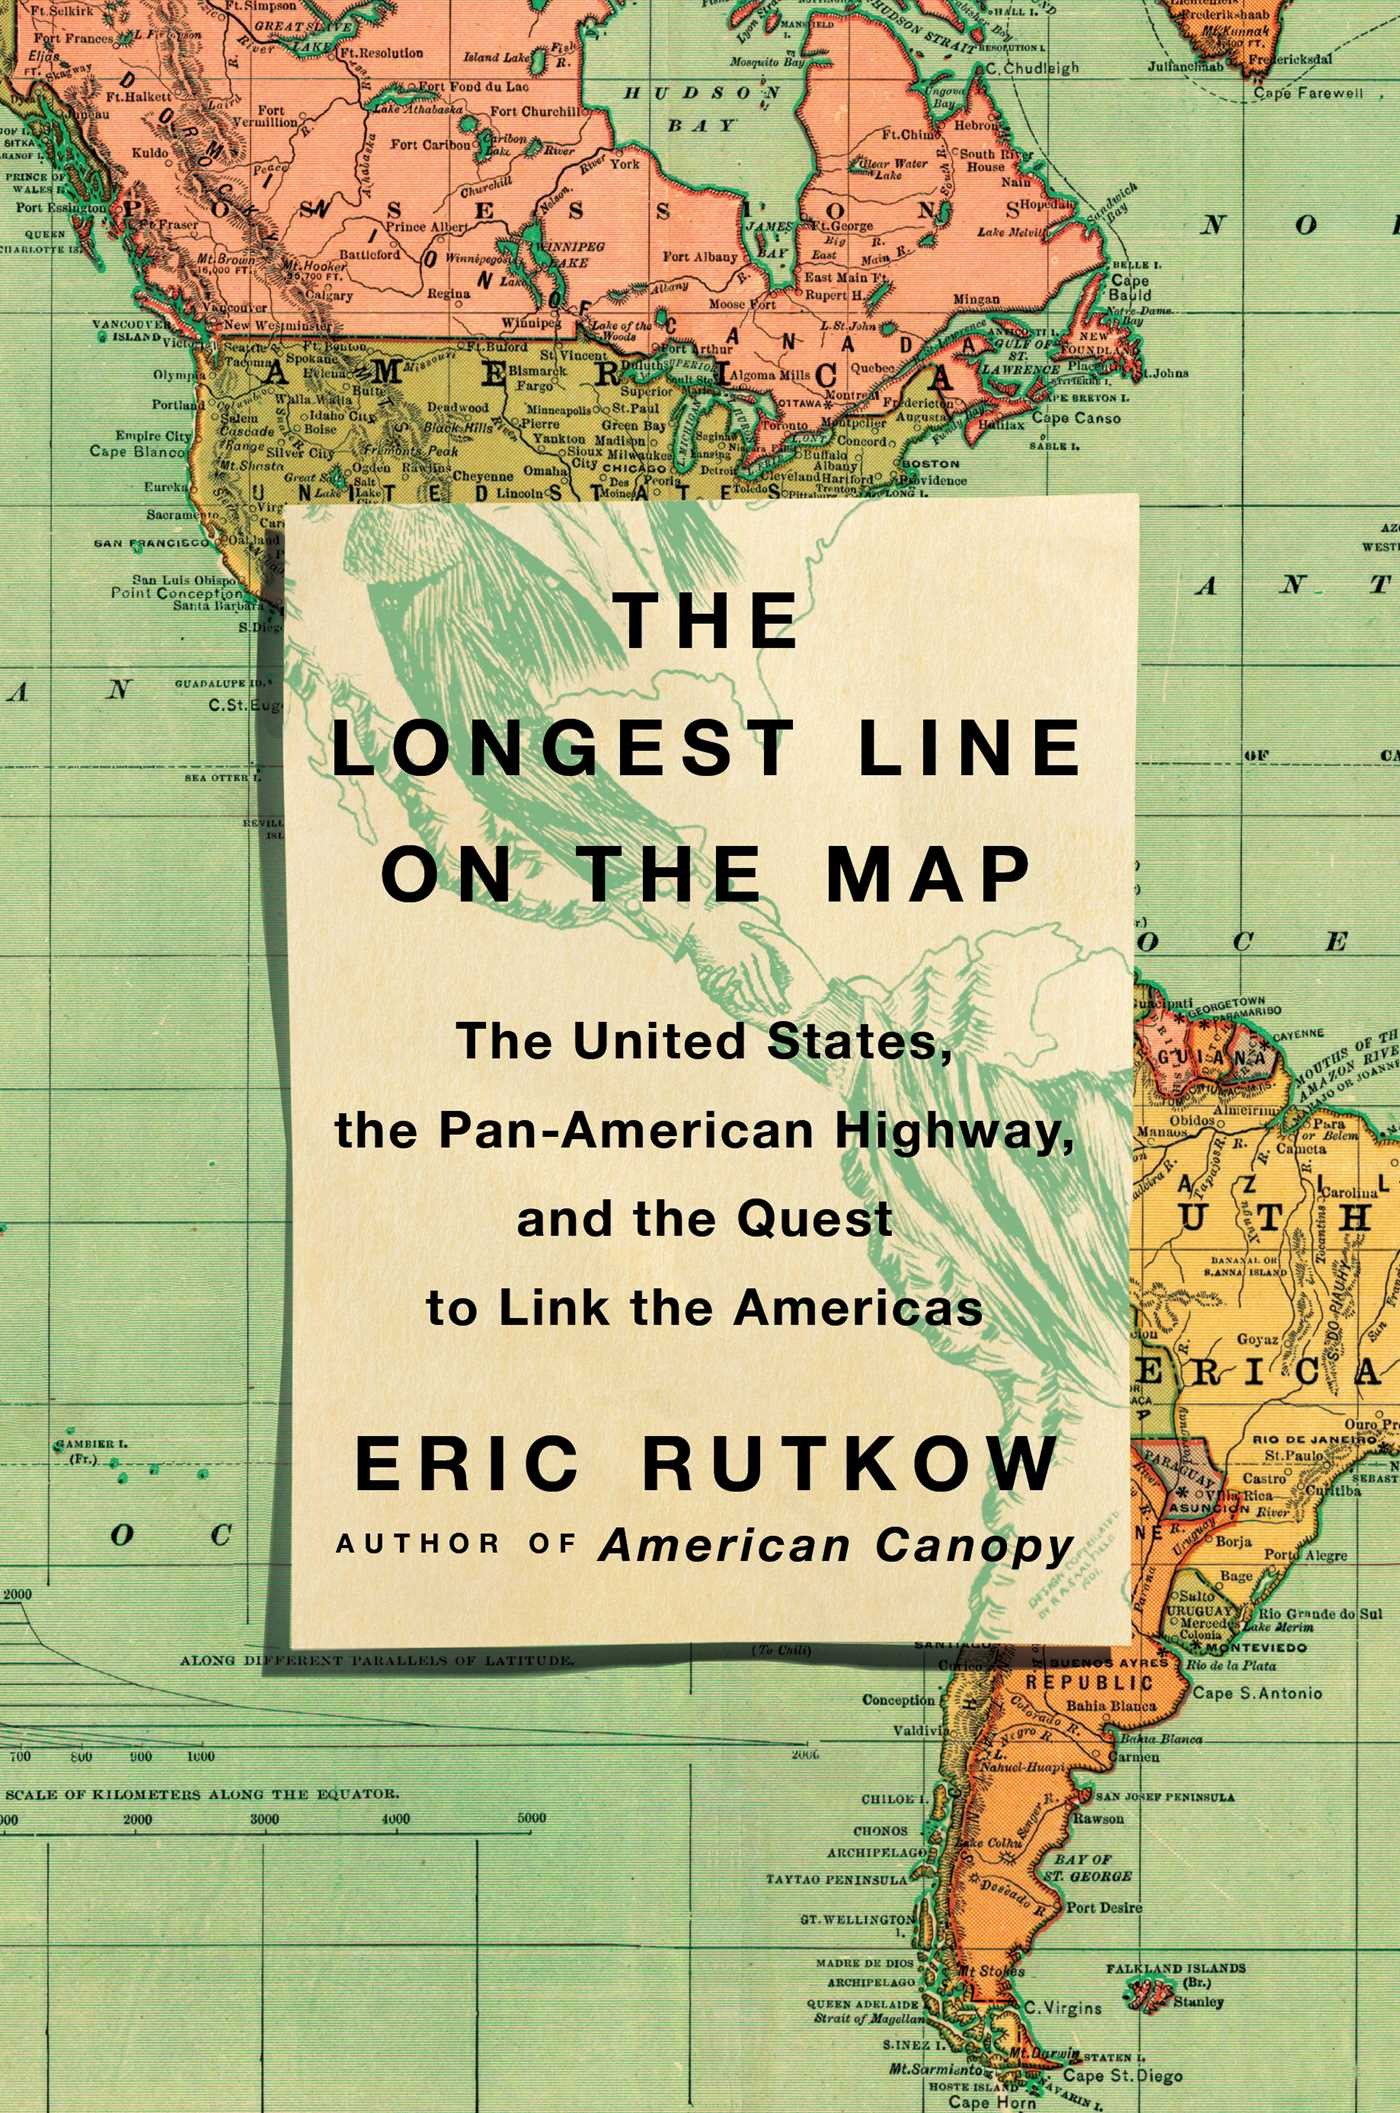 Book Cover Image (jpg): The Longest Line on the Map